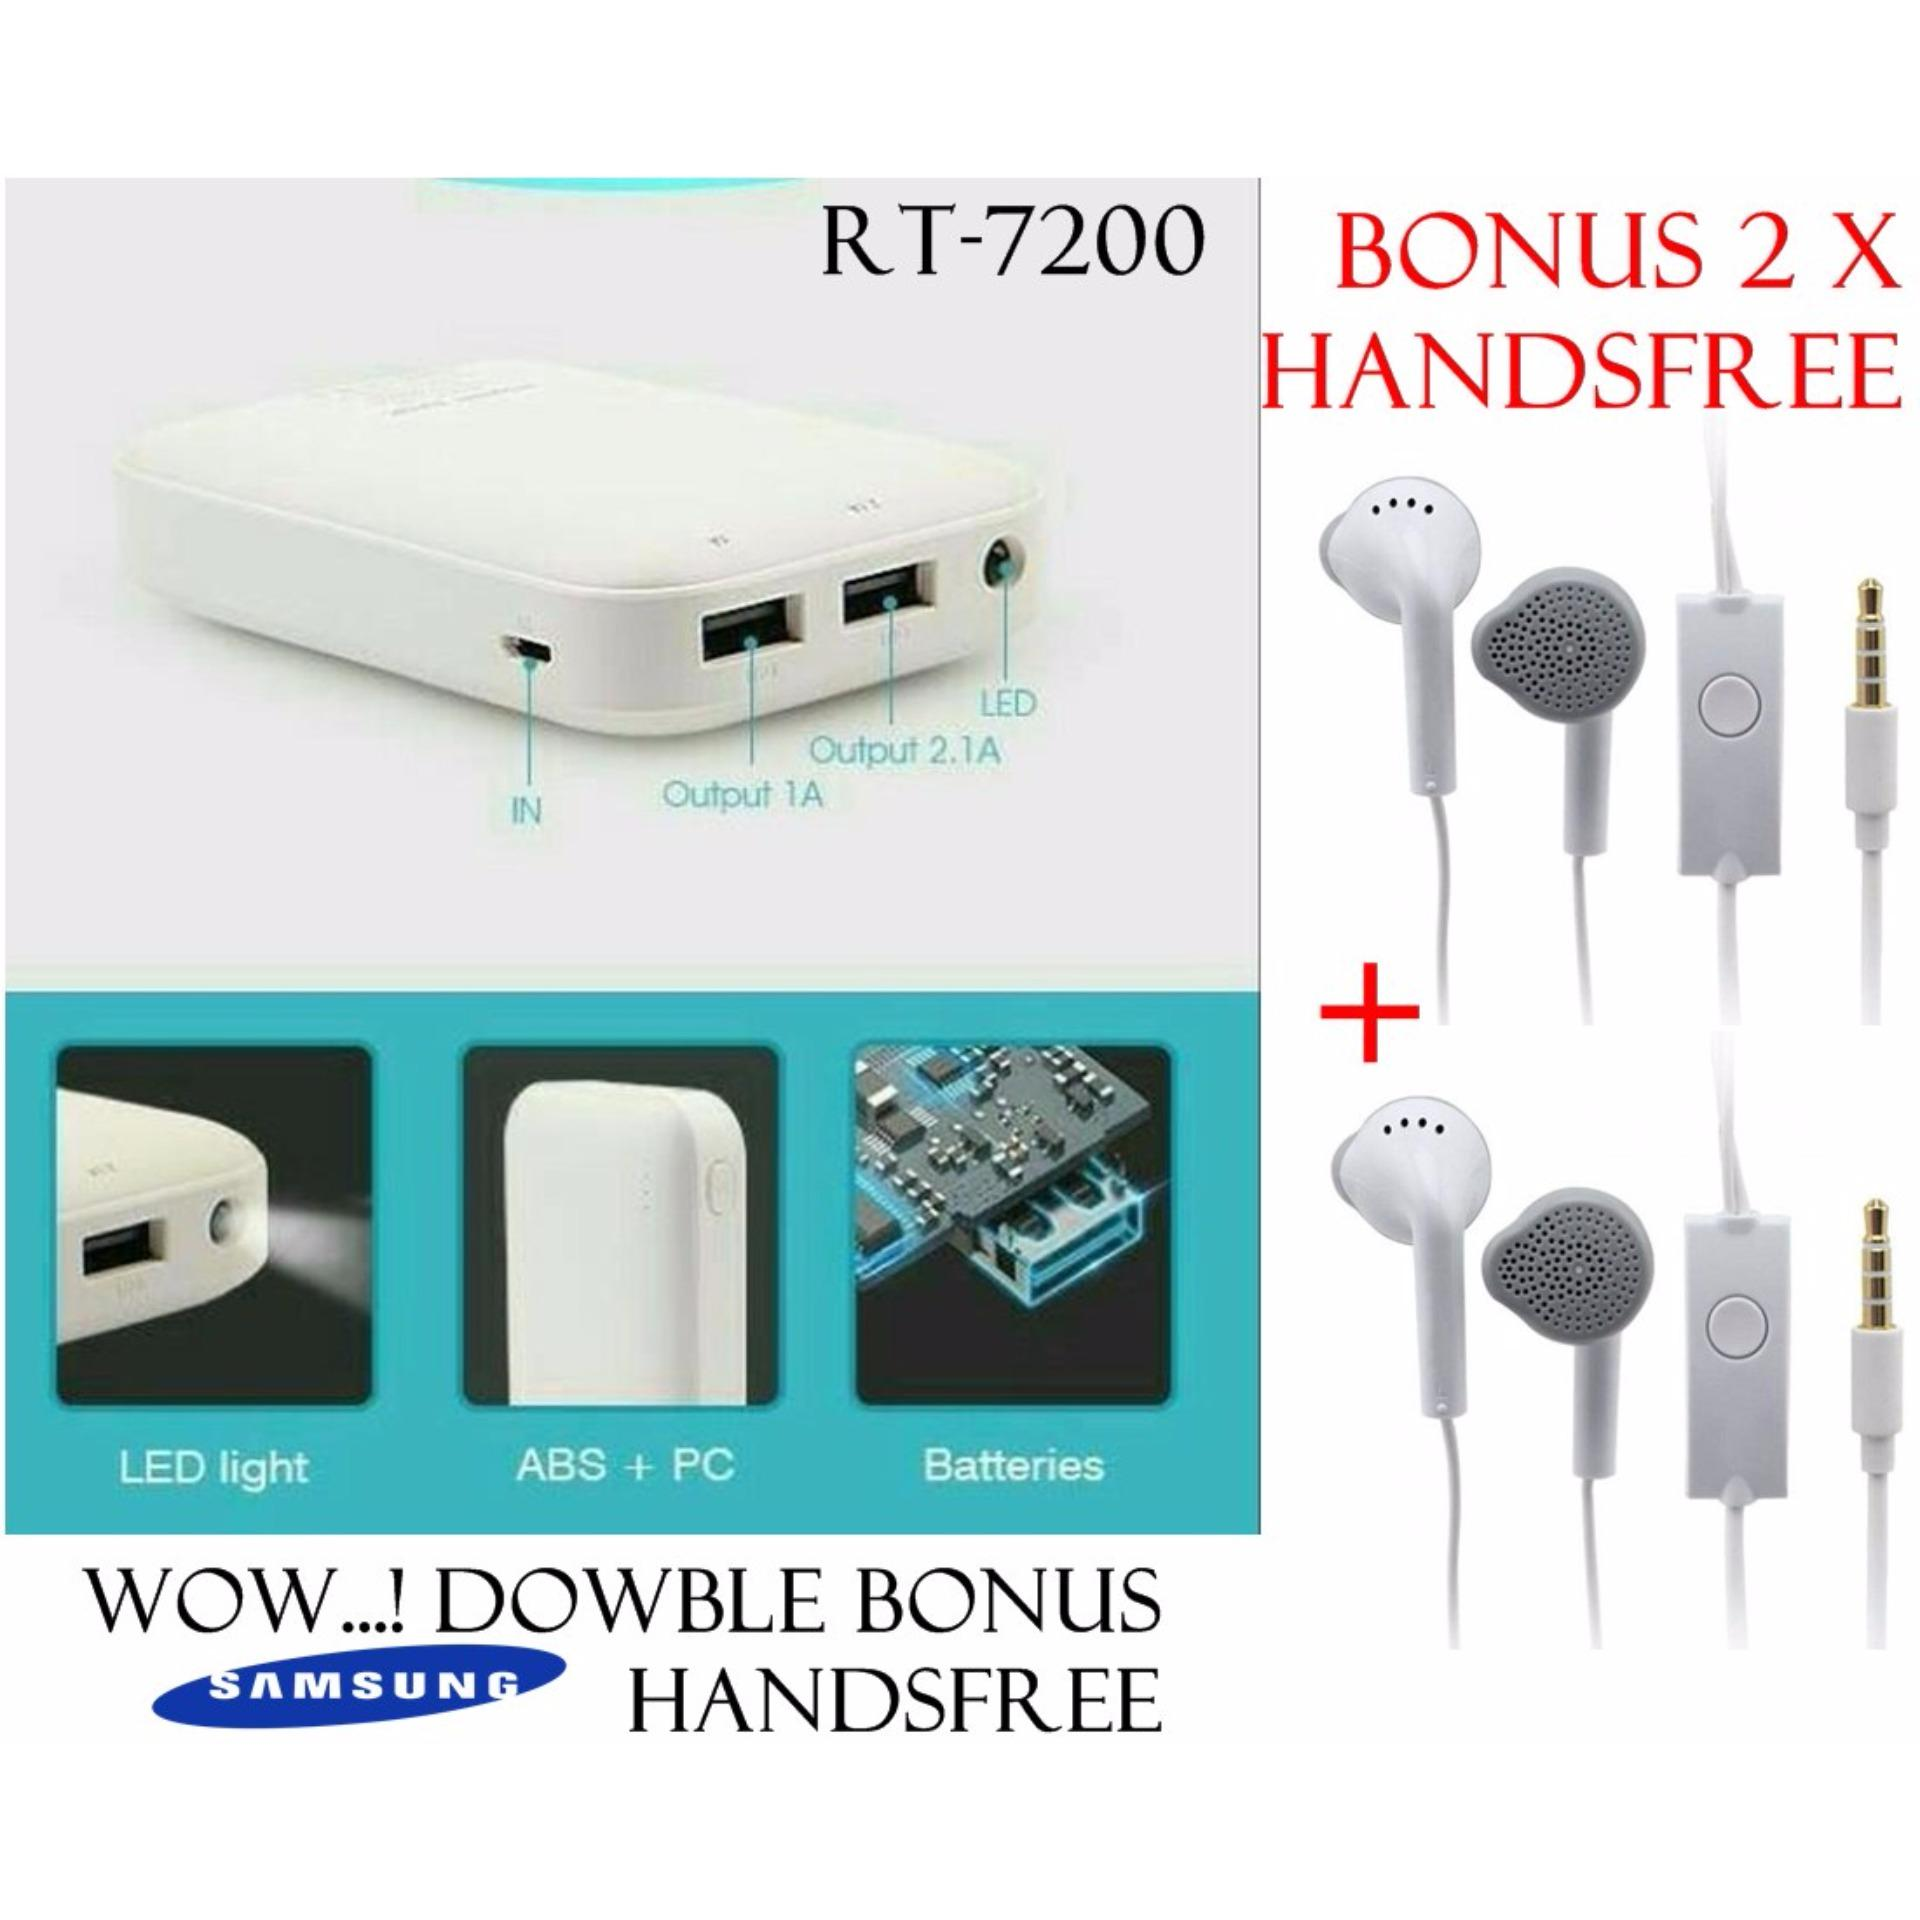 Robot By Vivan Power Bank Rt7200 6600Mah 2 Usb Ports For Android Gratis 2 X Handsfree Samsung Asli